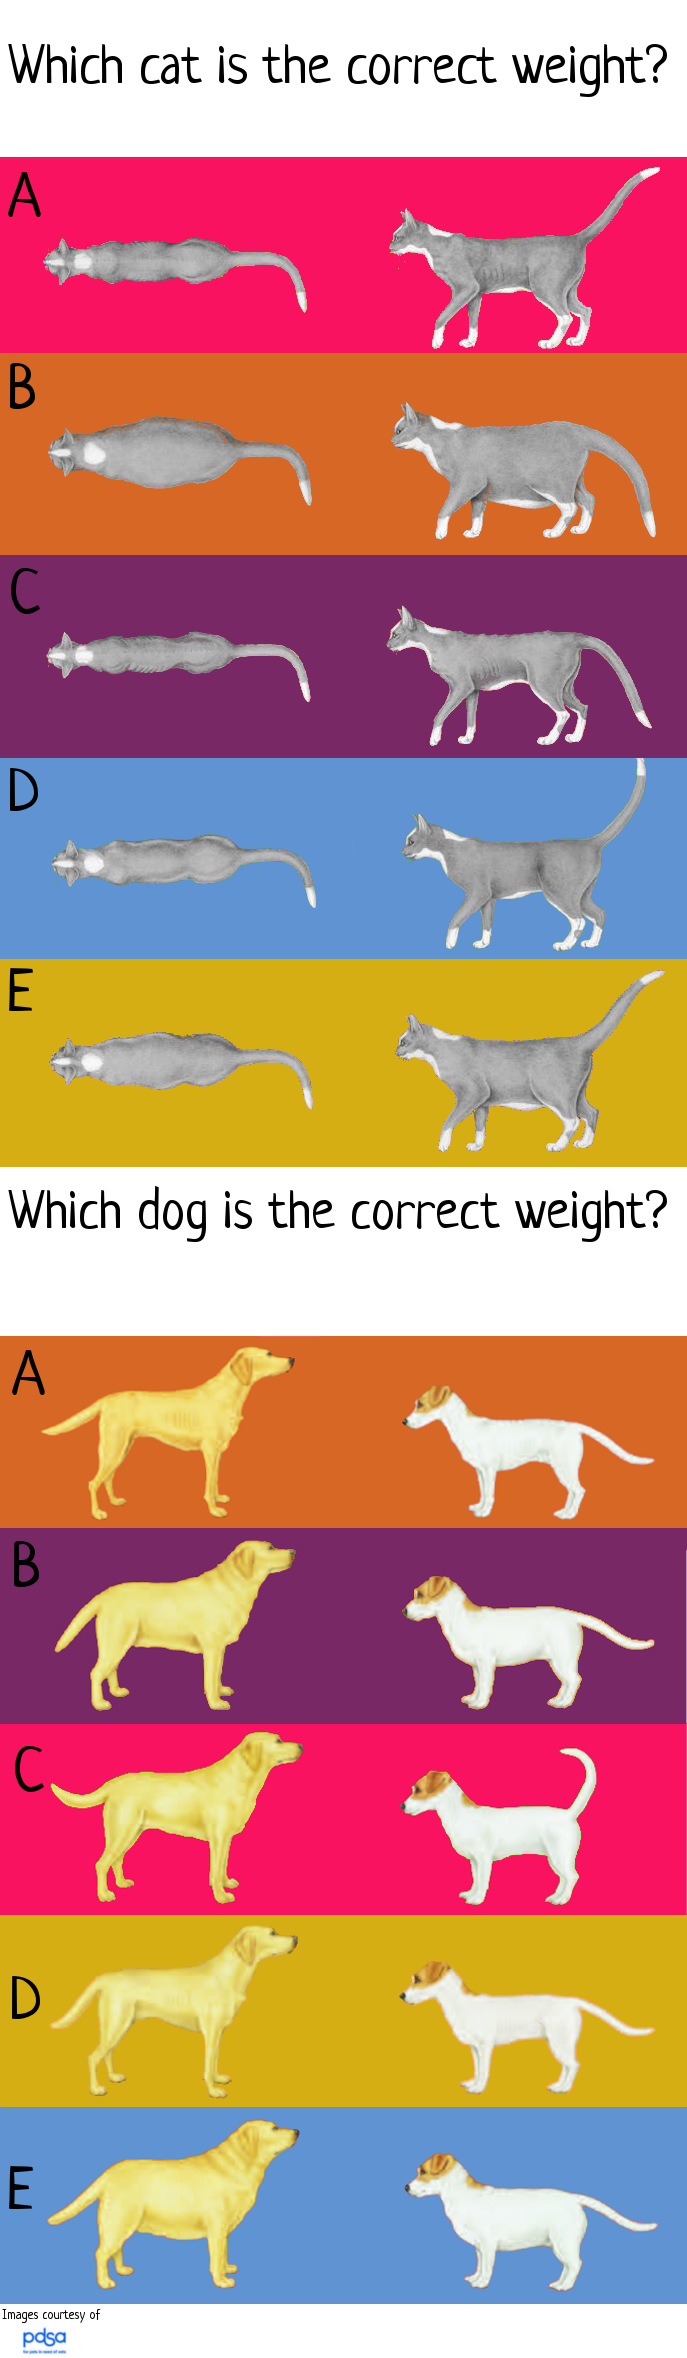 cat and dog weight quiz